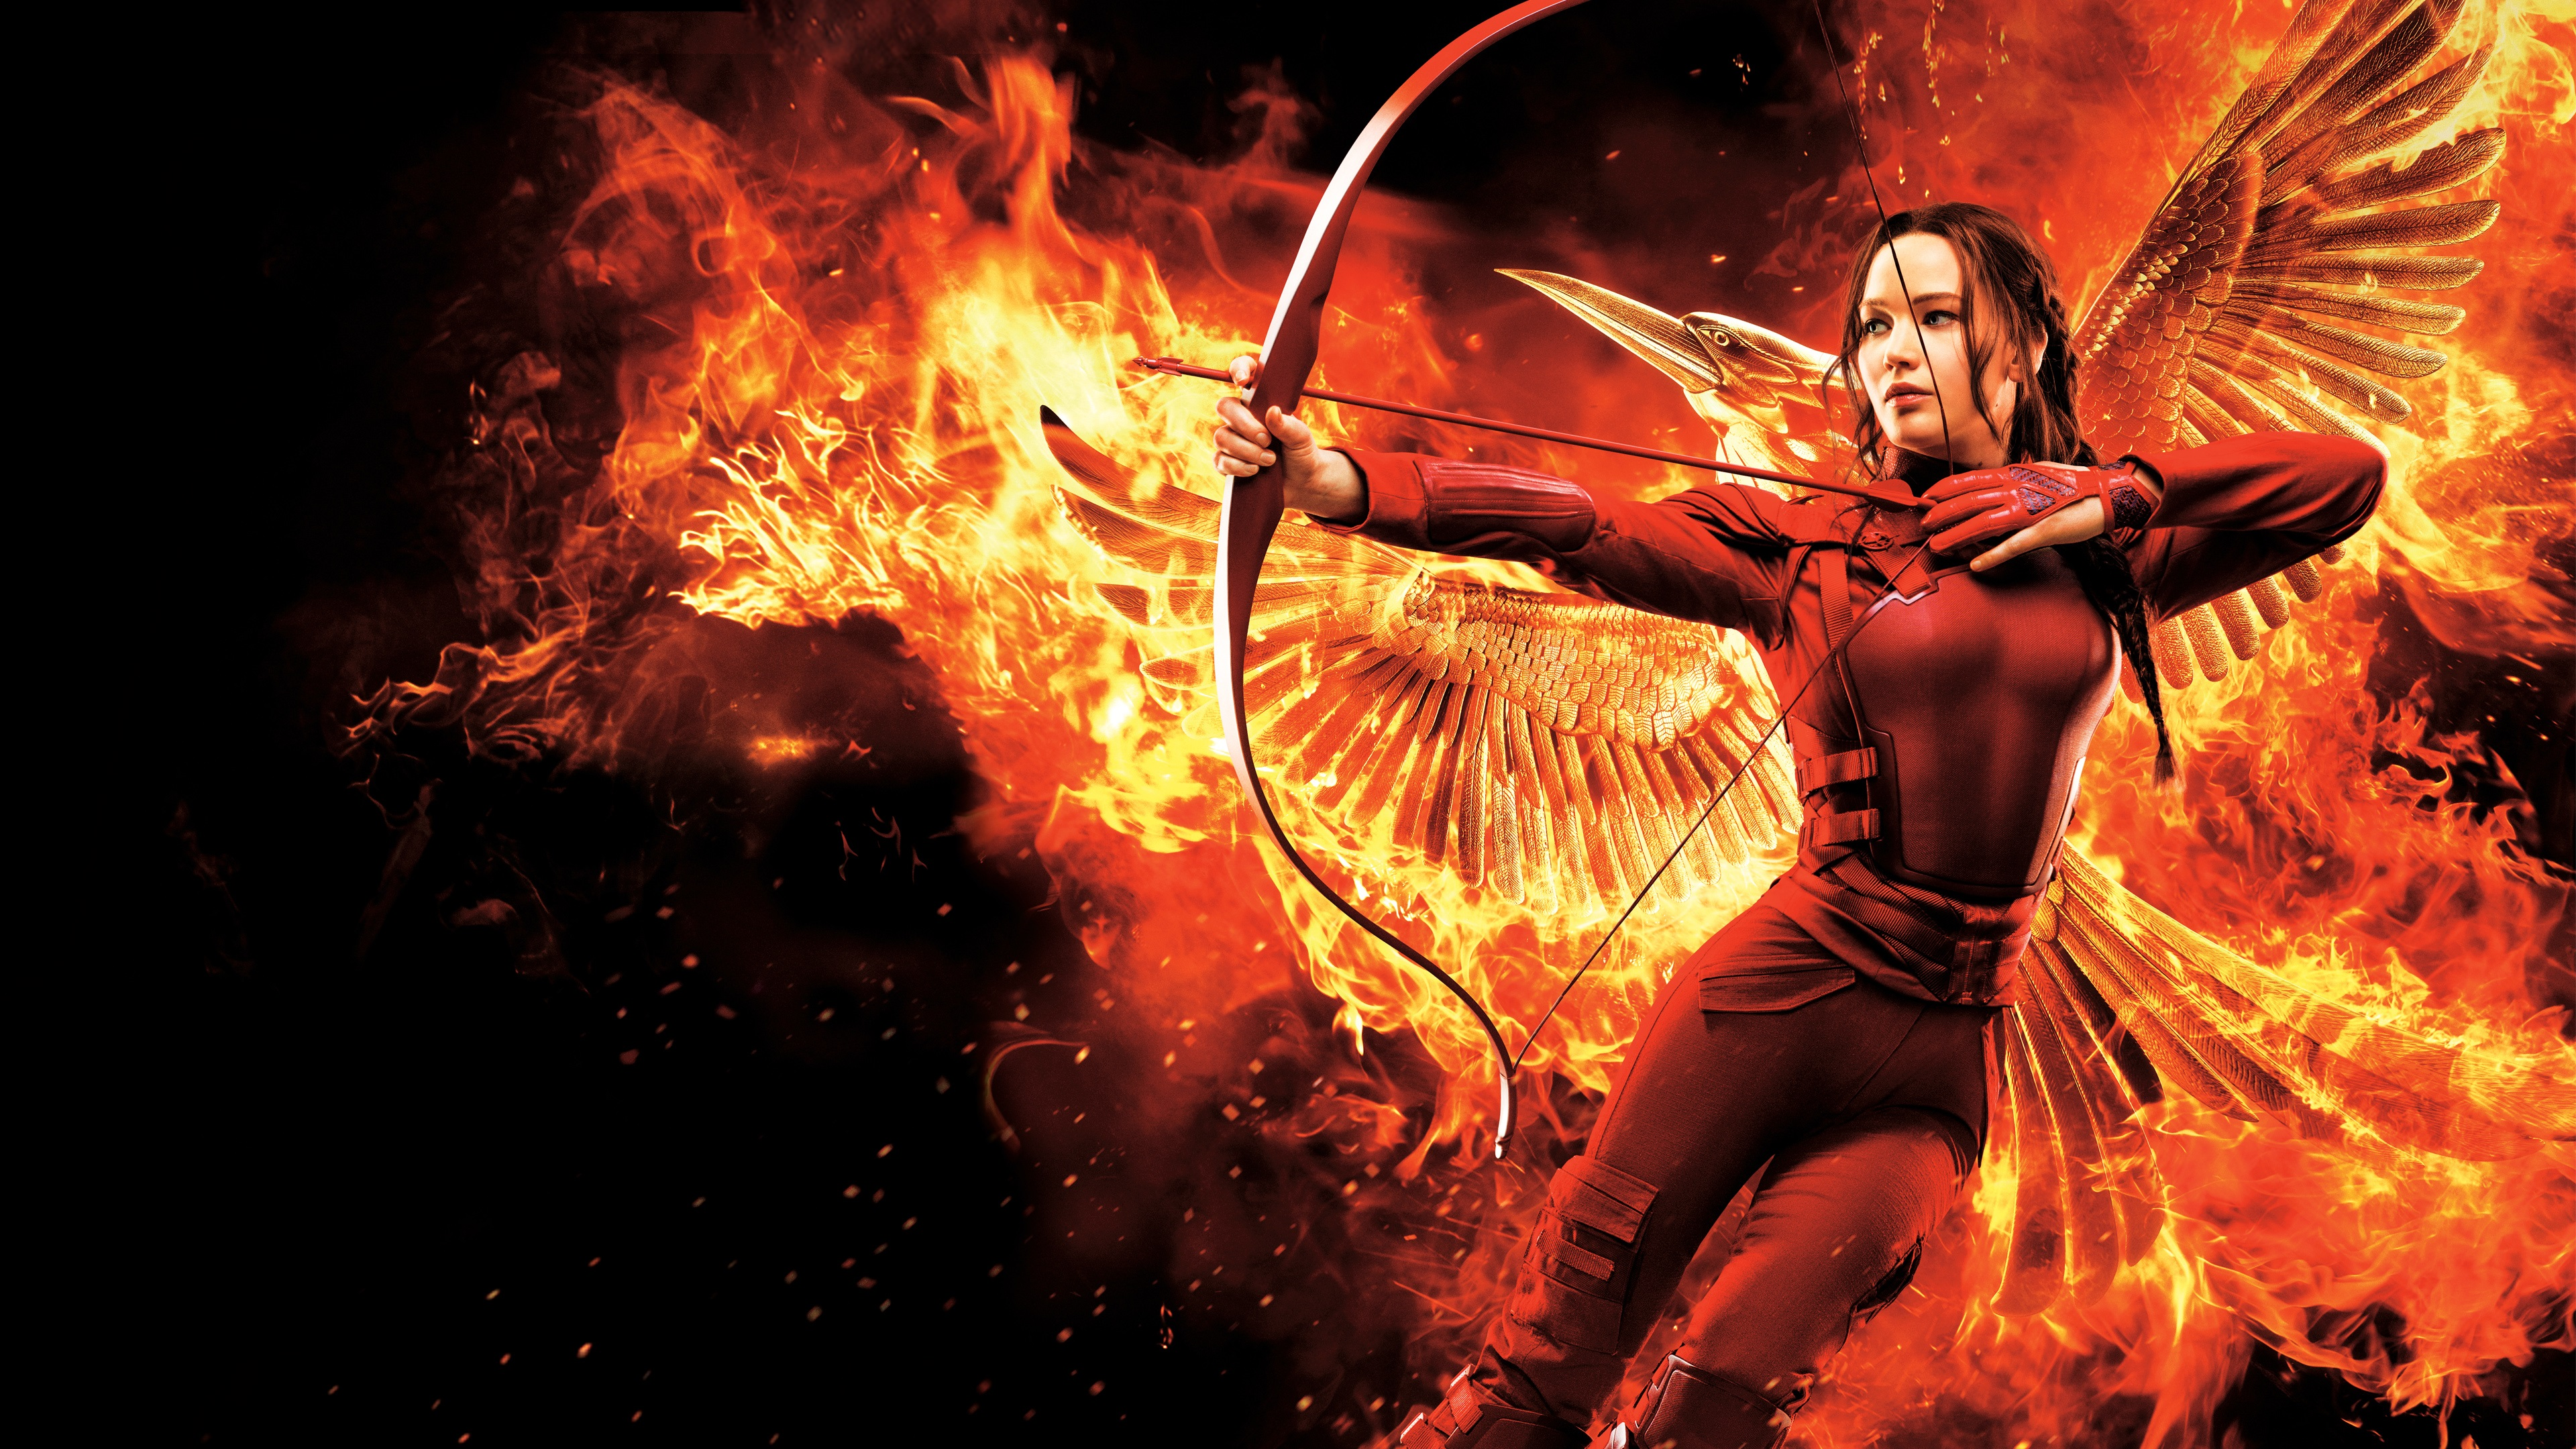 The hunger games mockingjay part 2 4k ultra hd wallpaper and movie the hunger games mockingjay part 2 jennifer lawrence wings bow flame fire voltagebd Choice Image